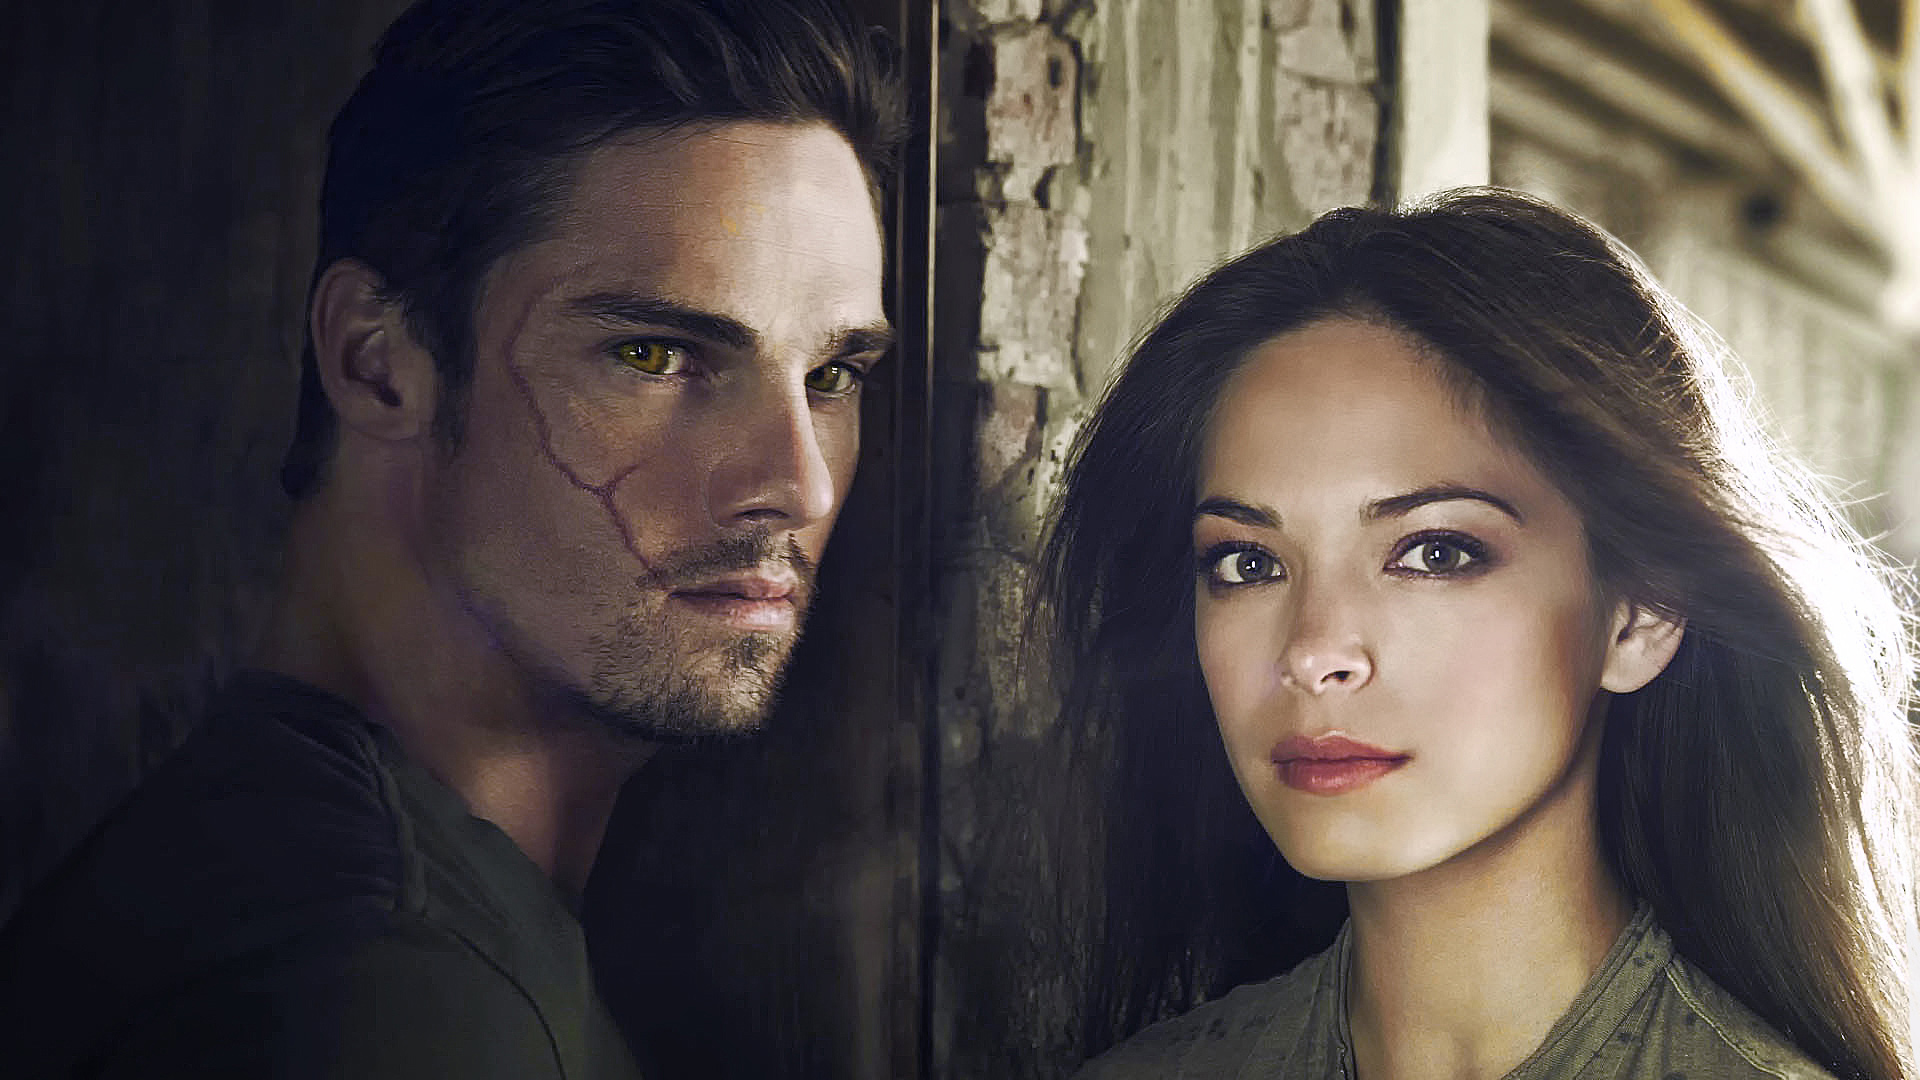 beauty_and_the_beast_wallpaper_1920x1080_07